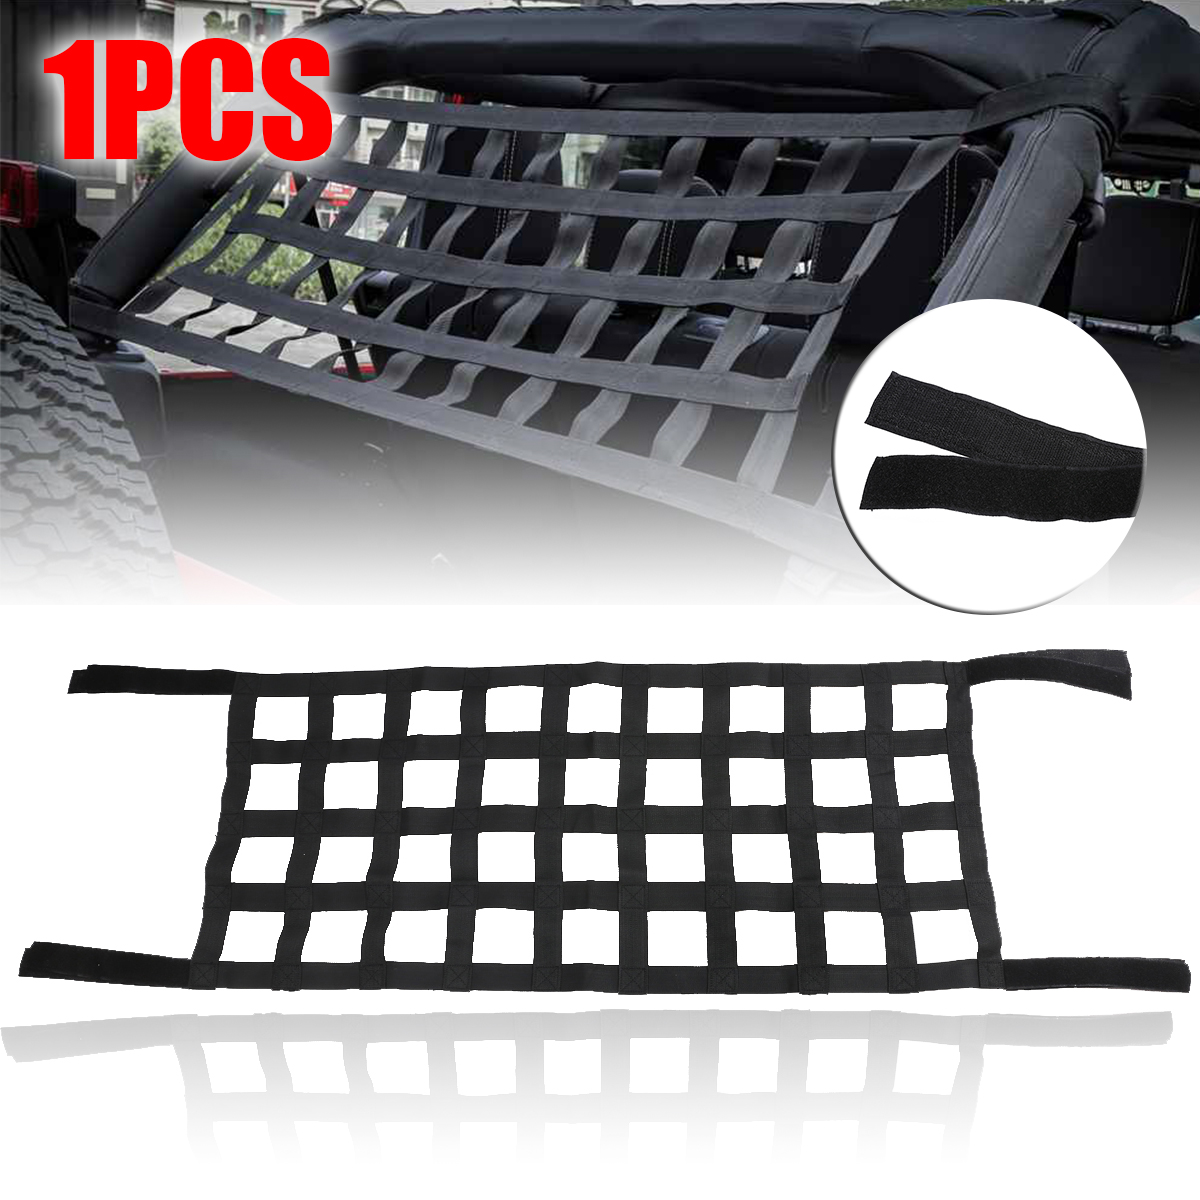 Mayitr 1pc Durable Mesh Car Top Roof Hammock High Quality Car Exterior Rest Bed Cargo Net For Jeep Wrangler Jl Jk 2007 2018 in Car Covers from Automobiles Motorcycles